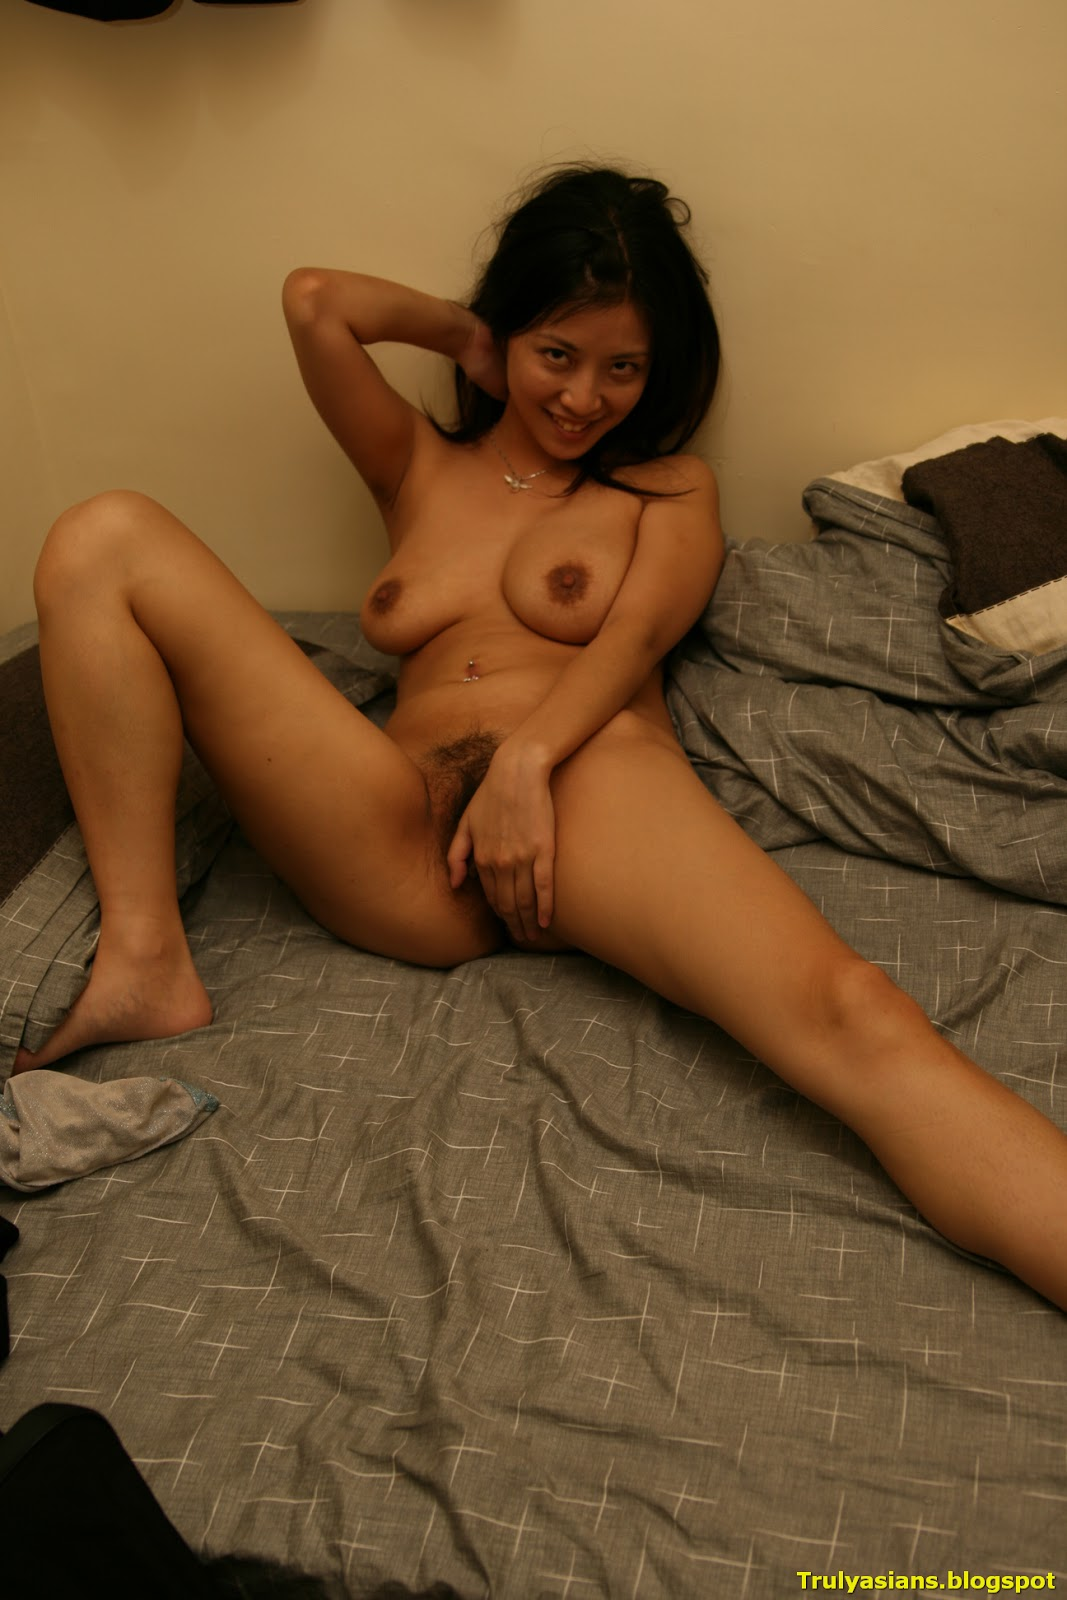 chinese amateure nude Truly Asians: Big Boobs Amateur Chinese Girl Posing Nude - Flora Ng - Part  4 of 4 (211 - 324 pics of 324)